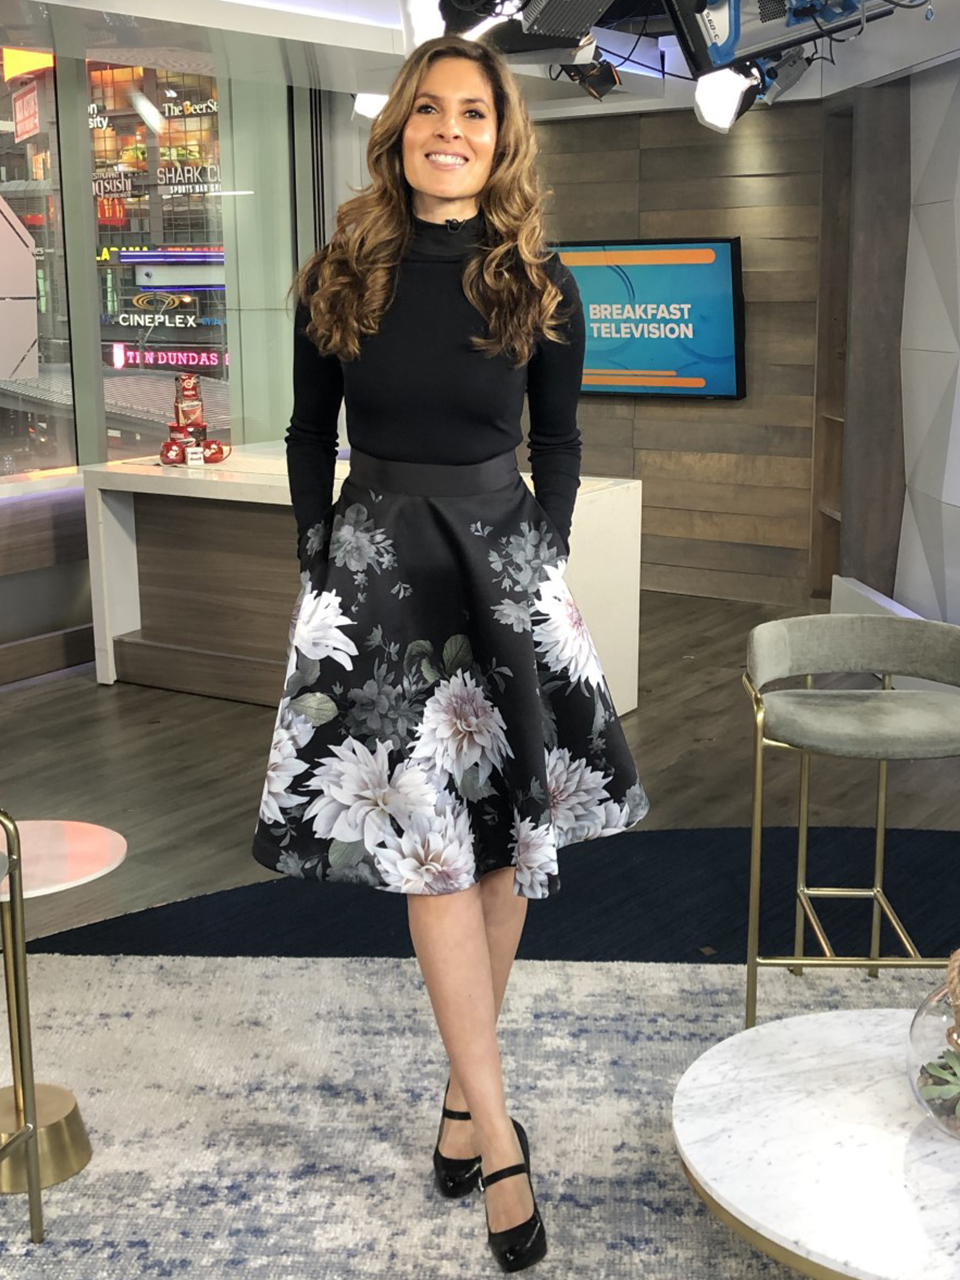 Dina wearing white flower print skirt with black top with heels